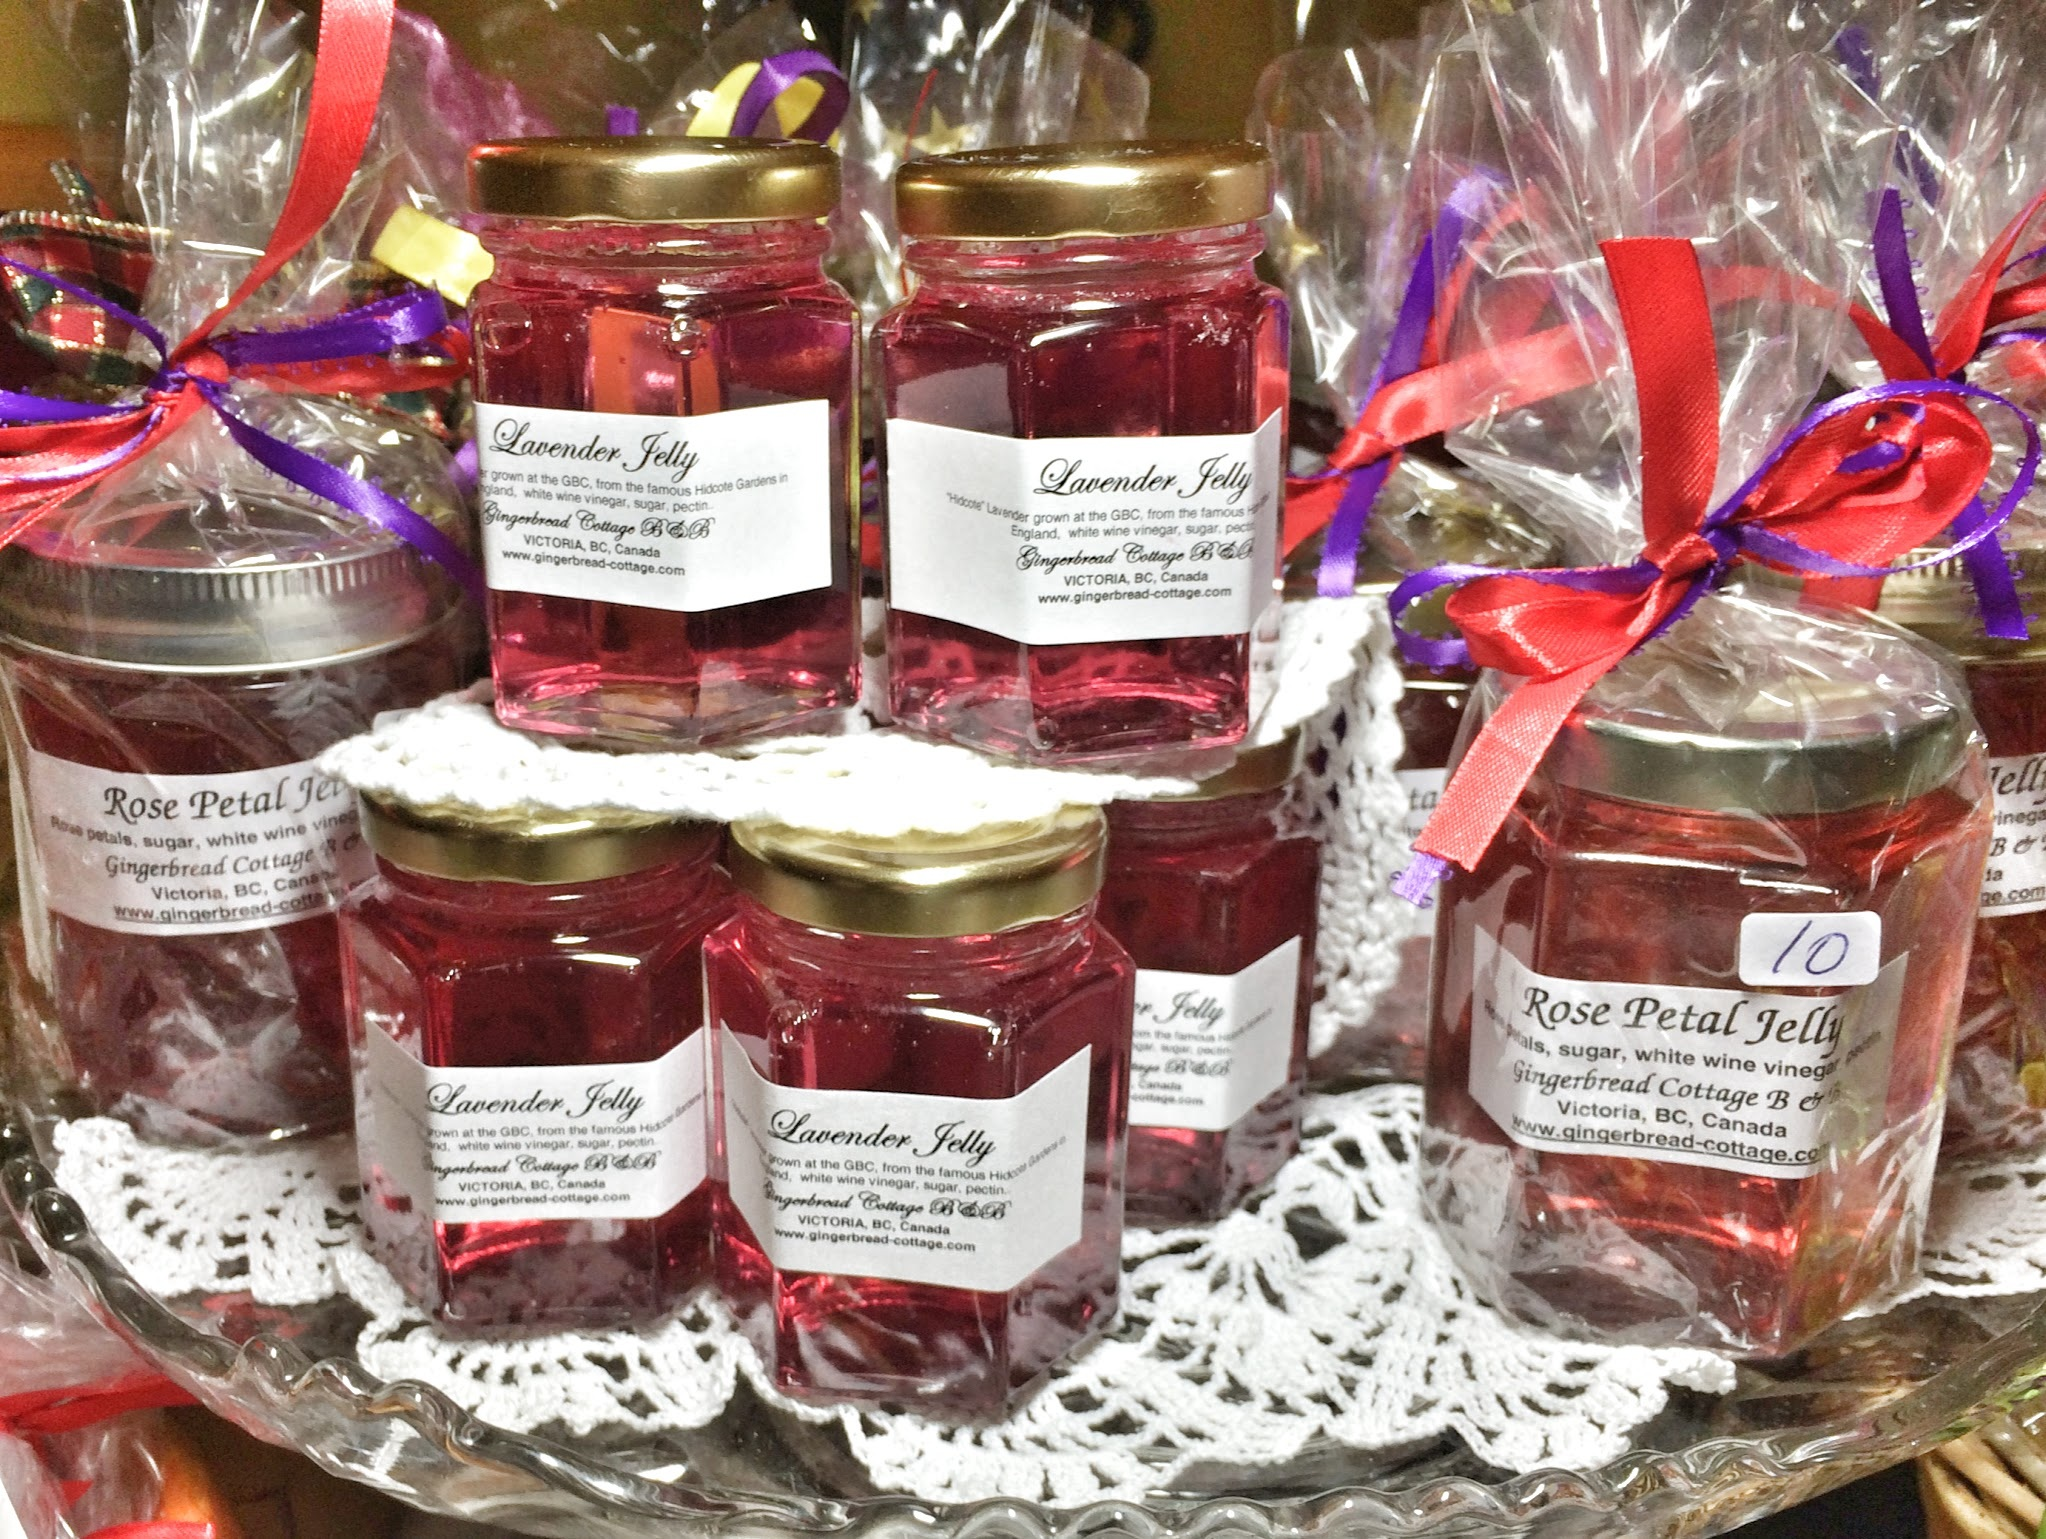 Lavender Jelly at the Gingerbread Cottage Bed and Breakfast